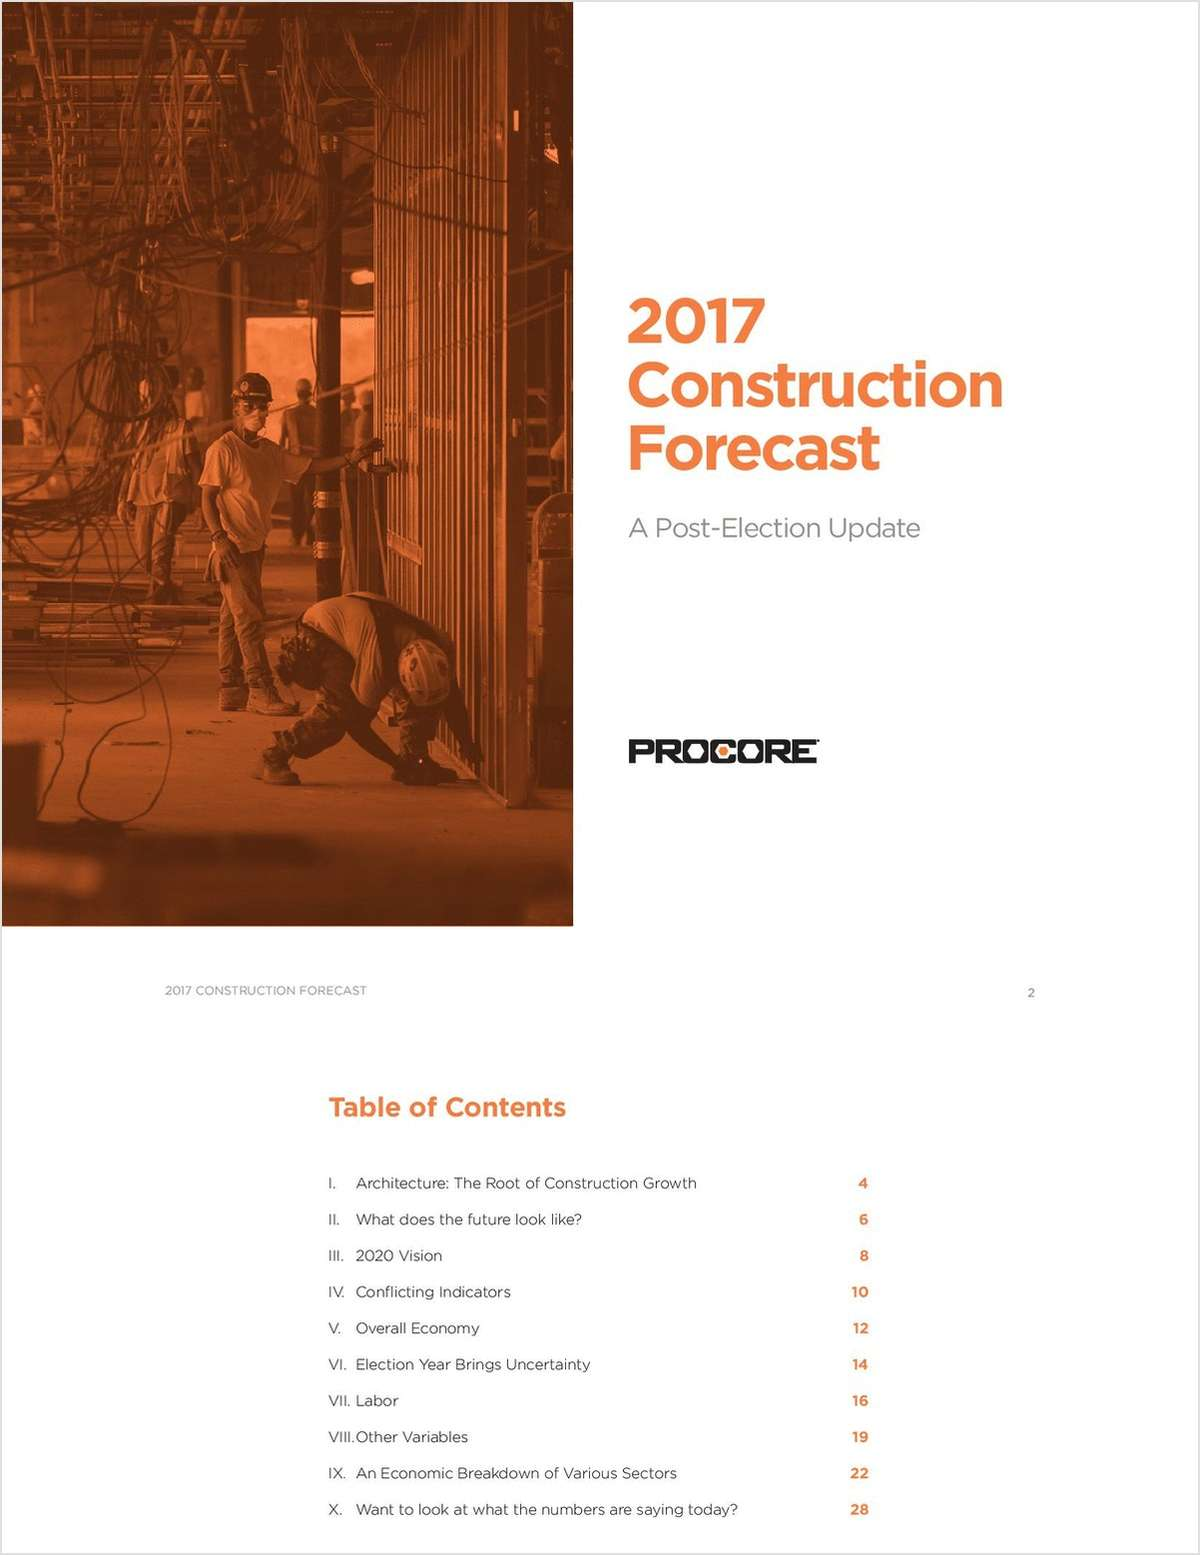 2017 Construction Forecast: A Post-Election Update